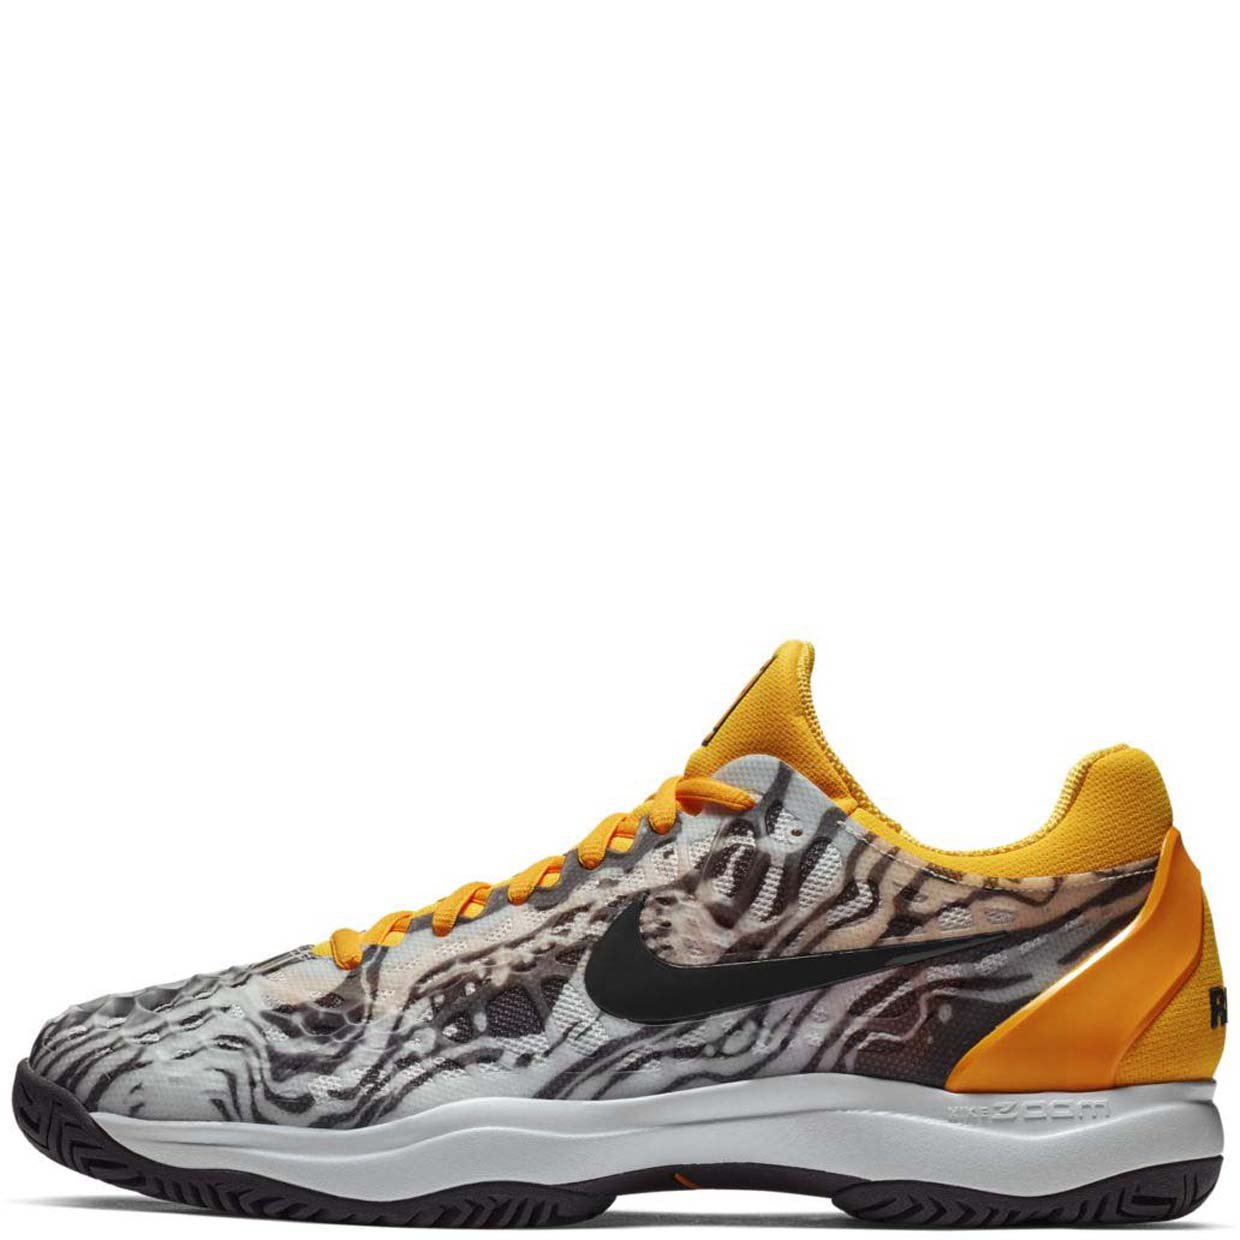 Кроссовки Nike MenS Zoom Cage 3 Tennis Shoe. Фото N2